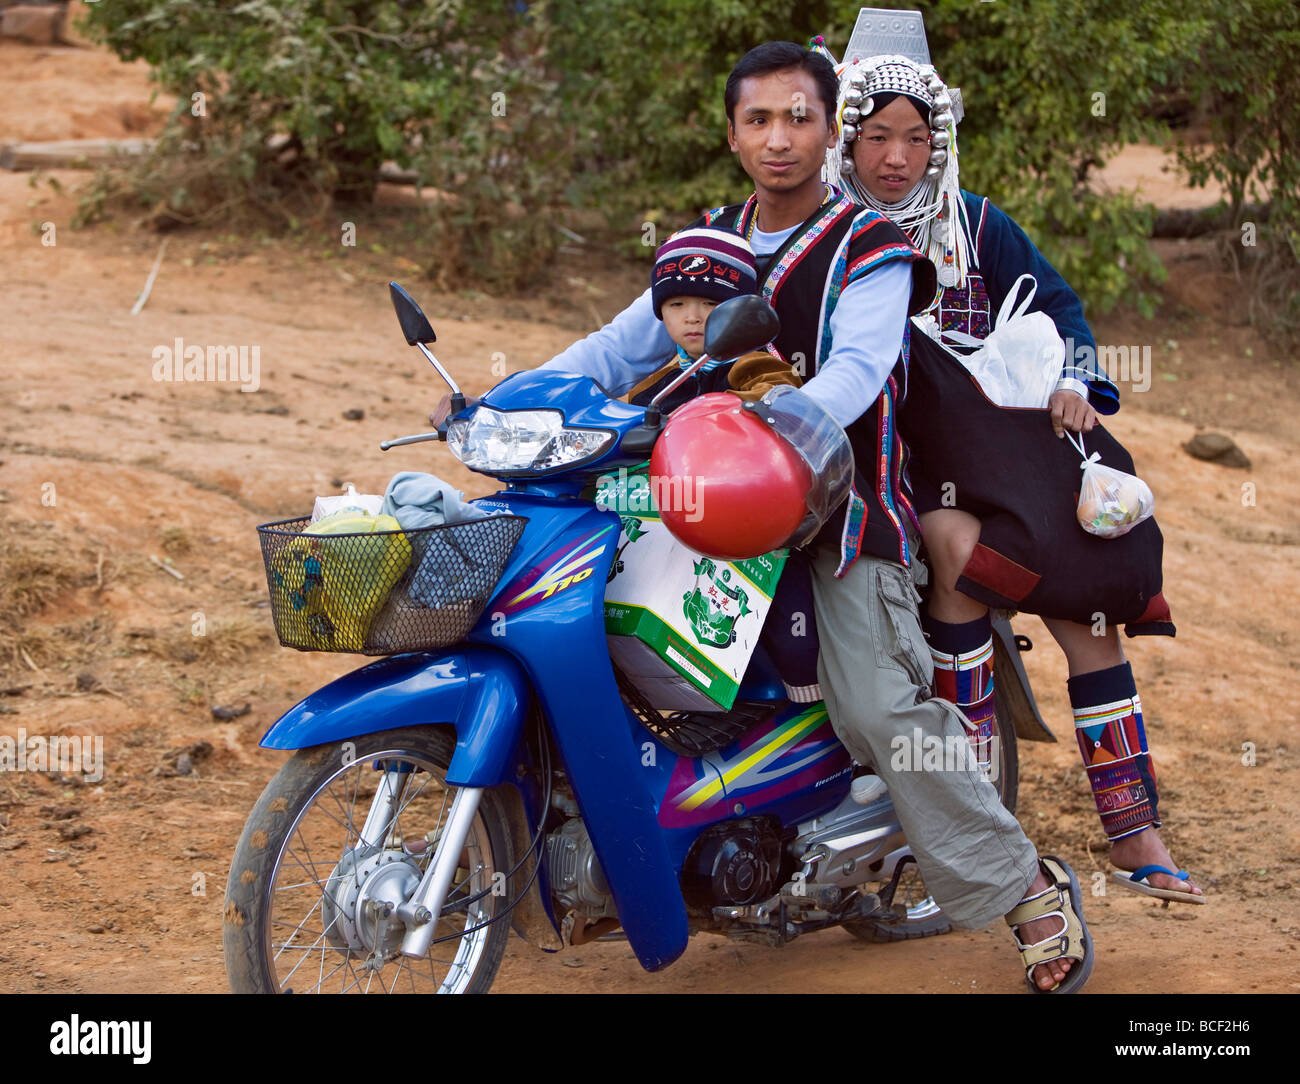 Myanmar, Burma, Namu-op. An Akha family with baggage just manages to ride on one motorcycle near Namu-op village. - Stock Image